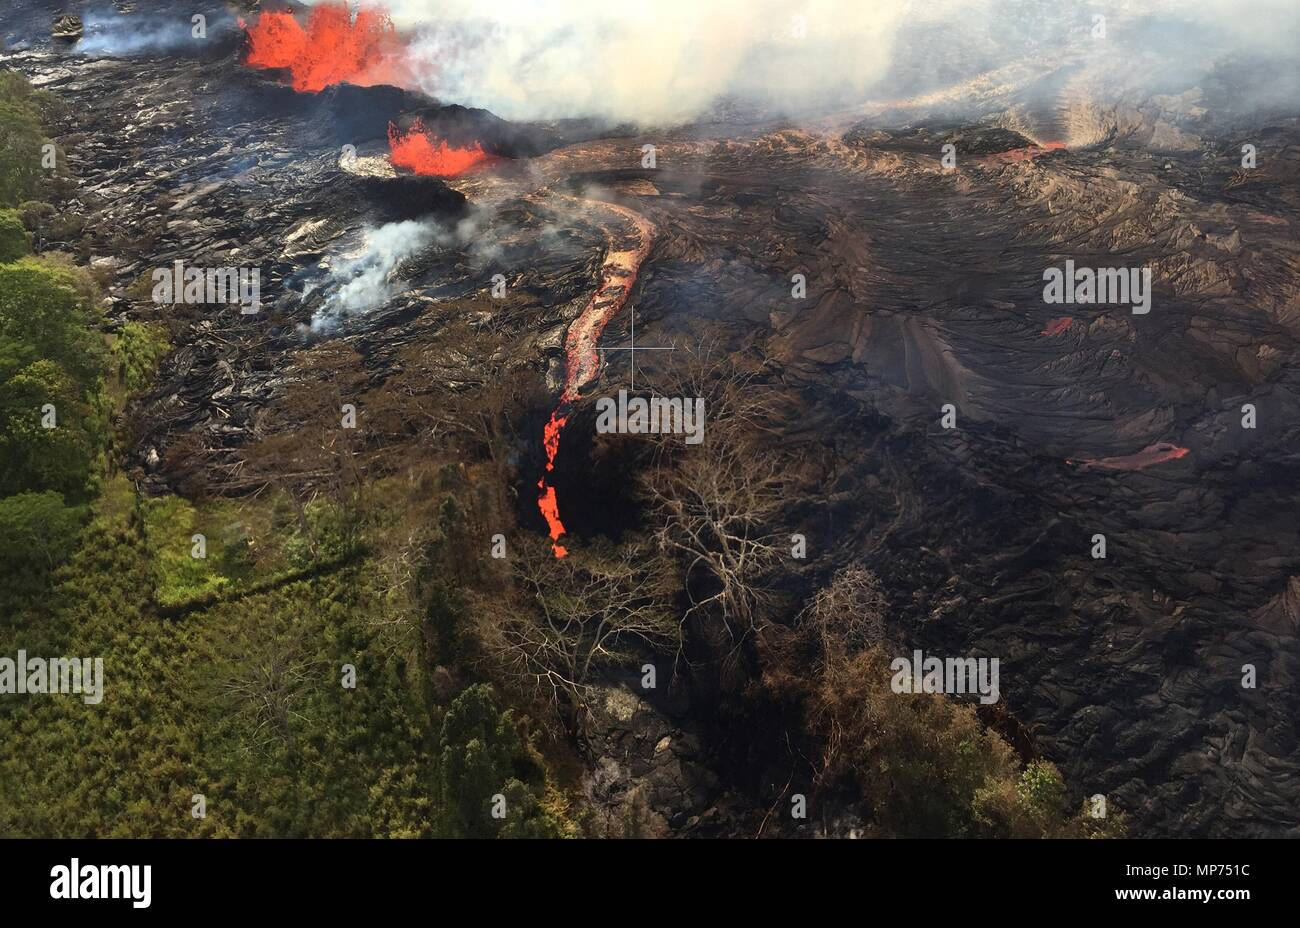 Hawaii, USA. 20th May 2018. Channelized lava streams down fissure 20 into a massive ground crack from the eruption of the Kilauea volcano May 20, 2018 in Pahoa, Hawaii. Credit: Planetpix/Alamy Live News Stock Photo